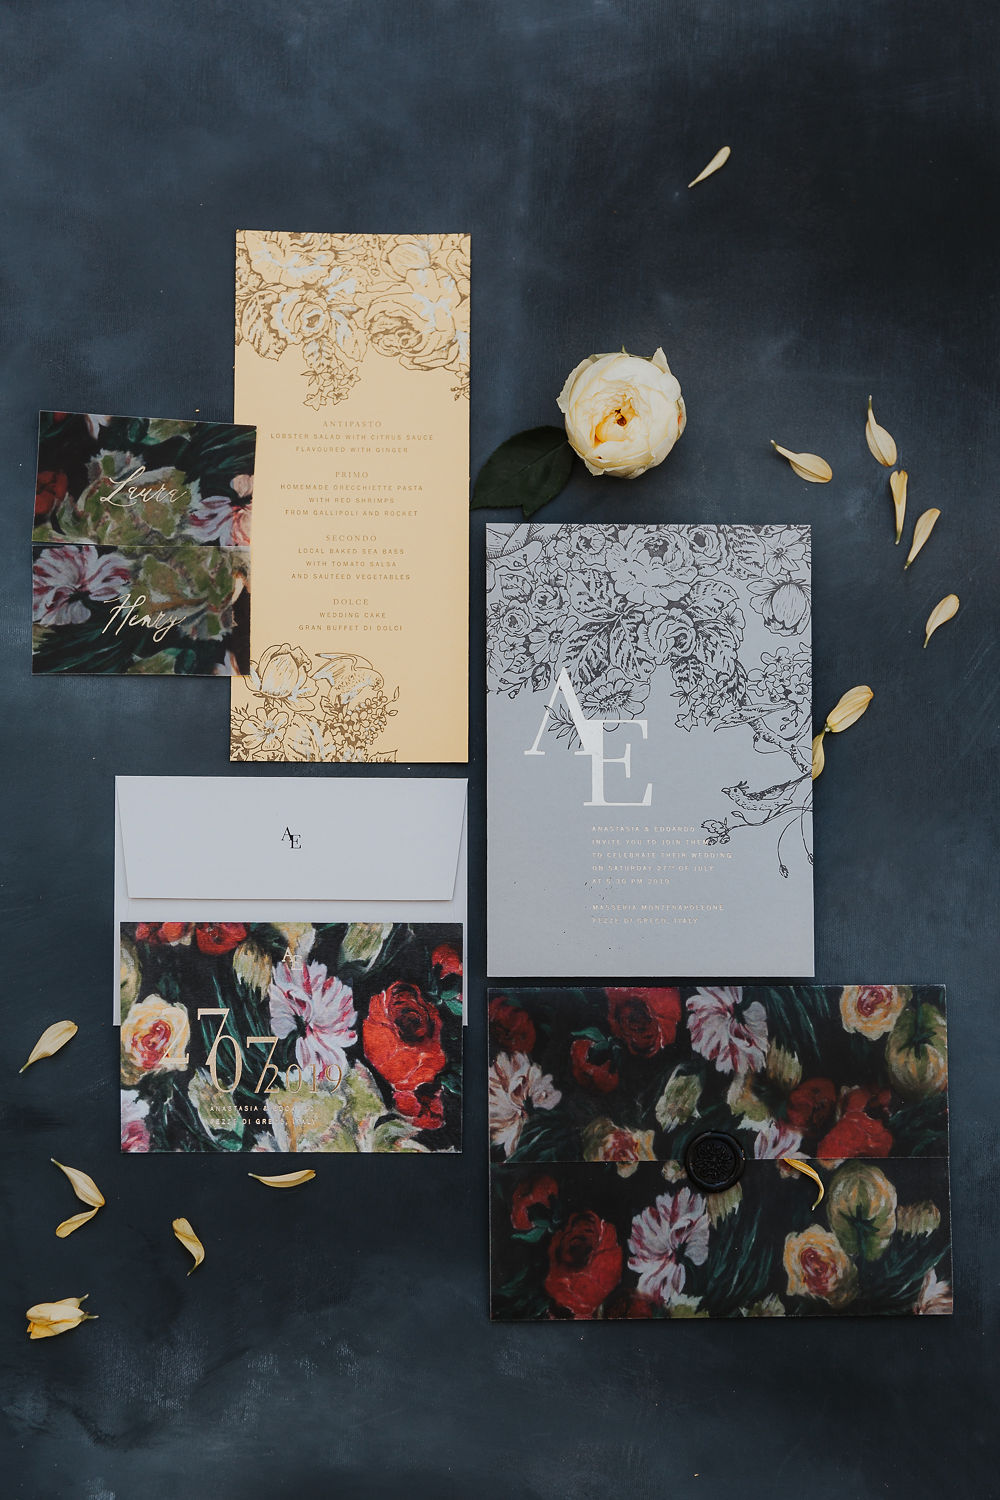 Letterpress stationery on colourful papers with gold foil & baroque florals